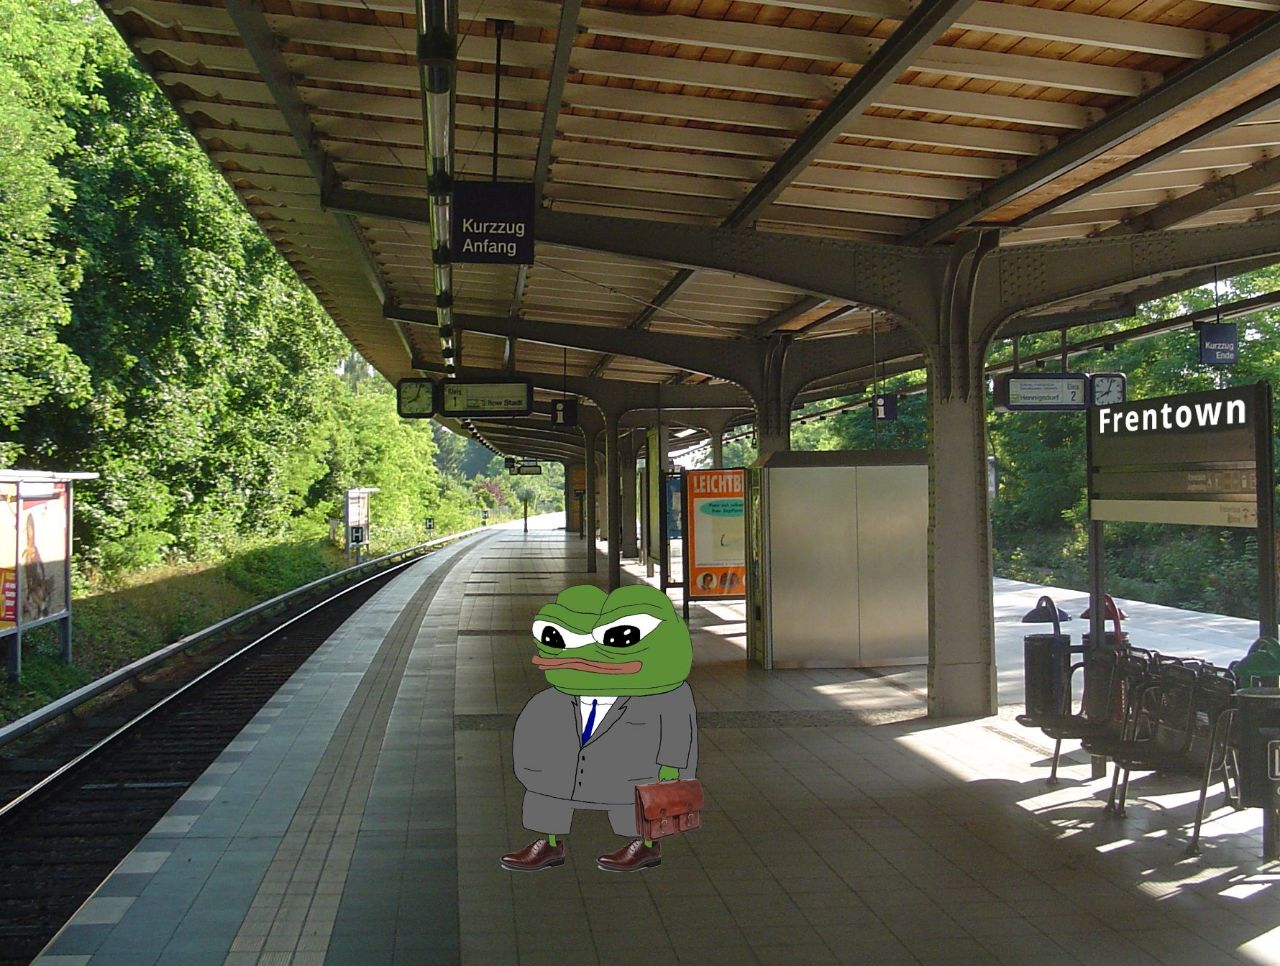 Time for a new week frens. Time to go to work